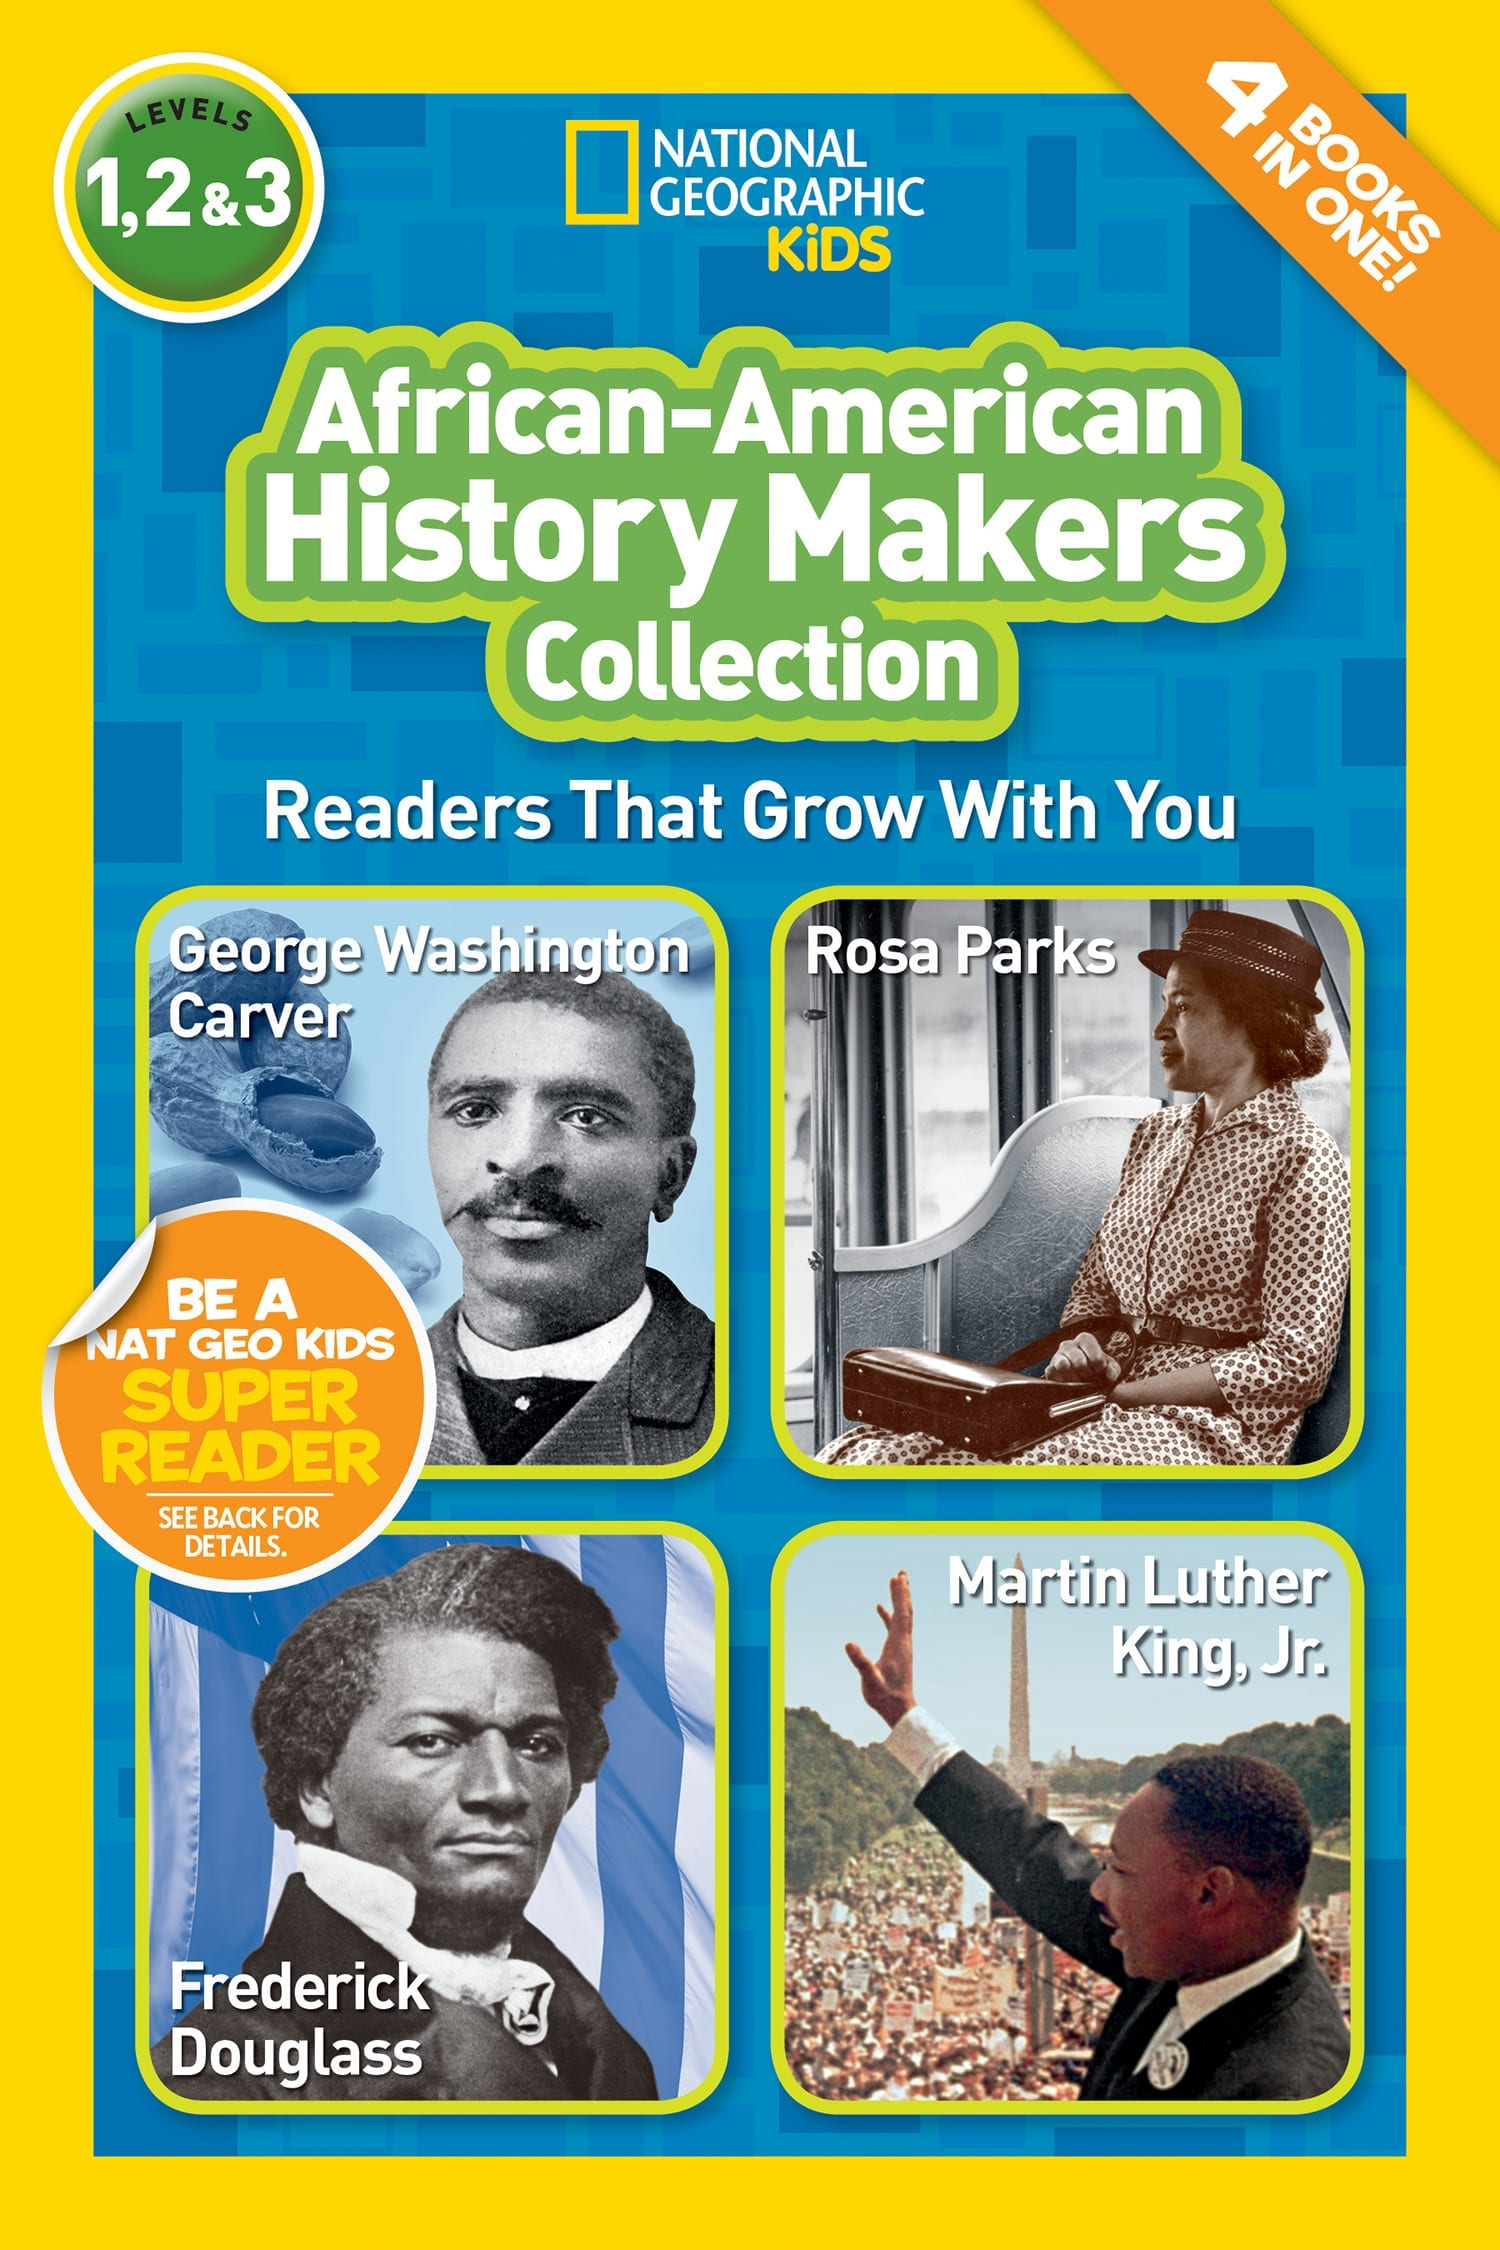 African American History Makers Bedford Falls Book Fairs